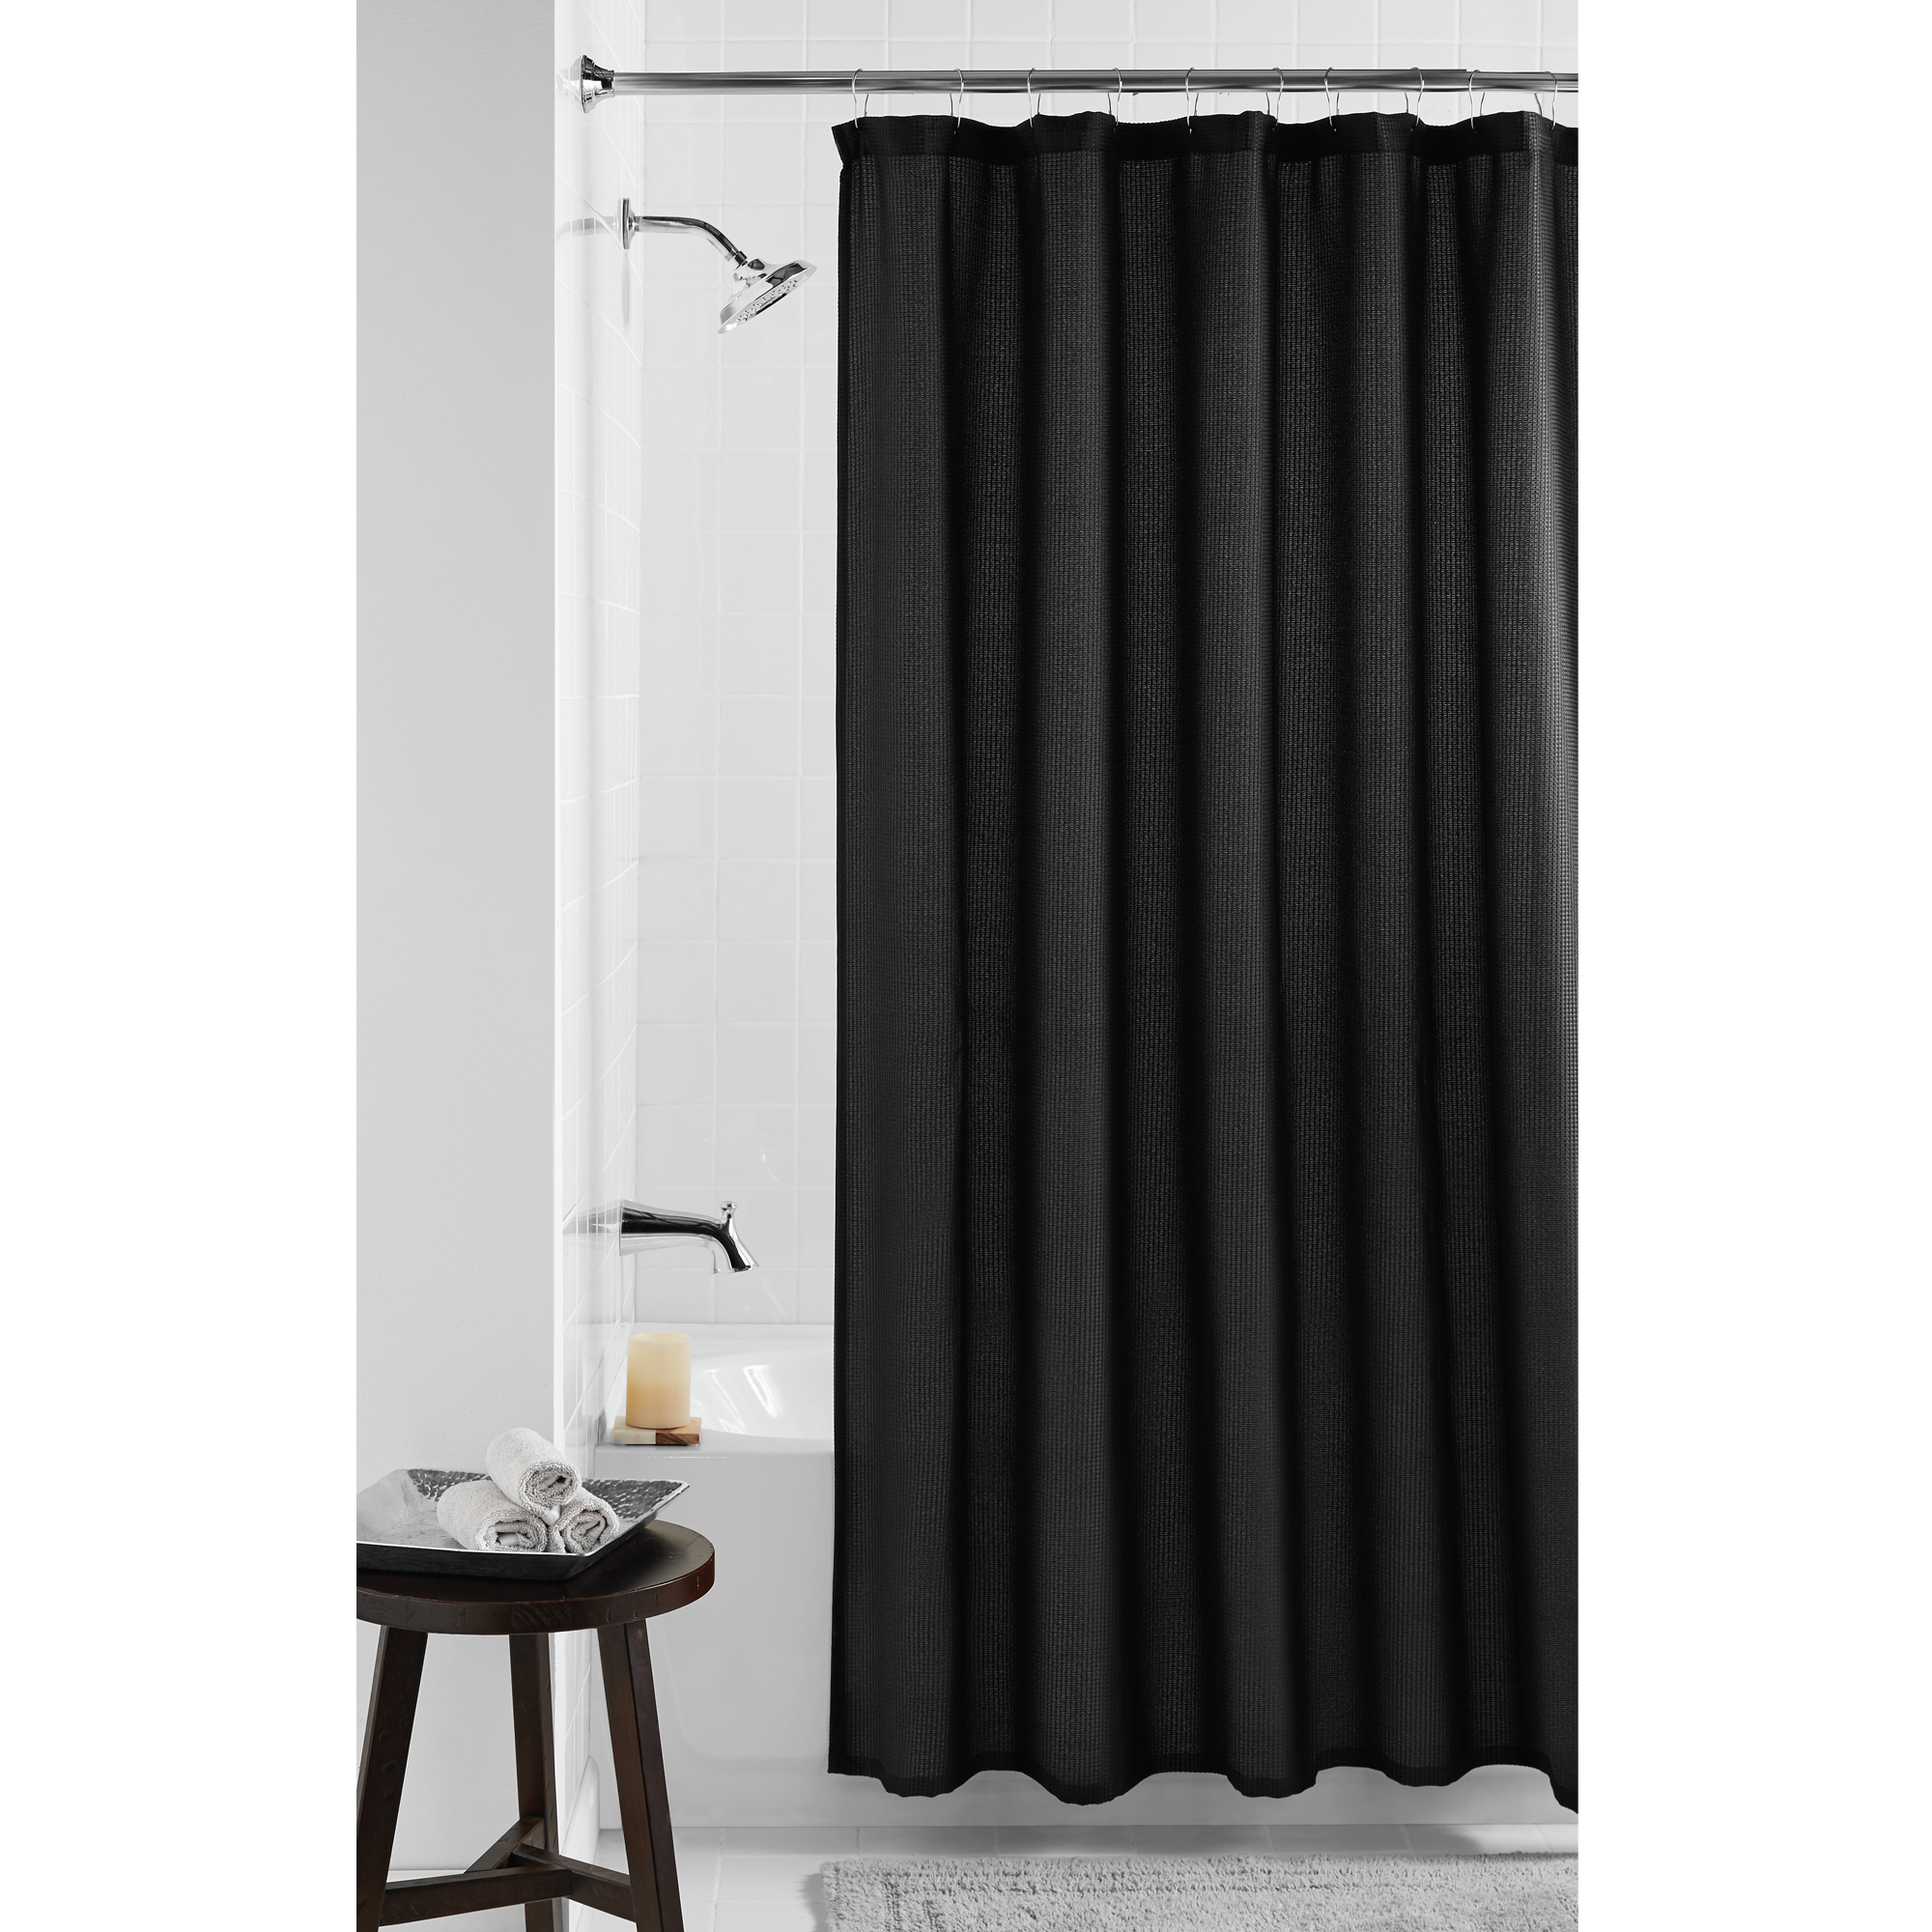 Mainstays Waffle Fabric Shower Curtain Black